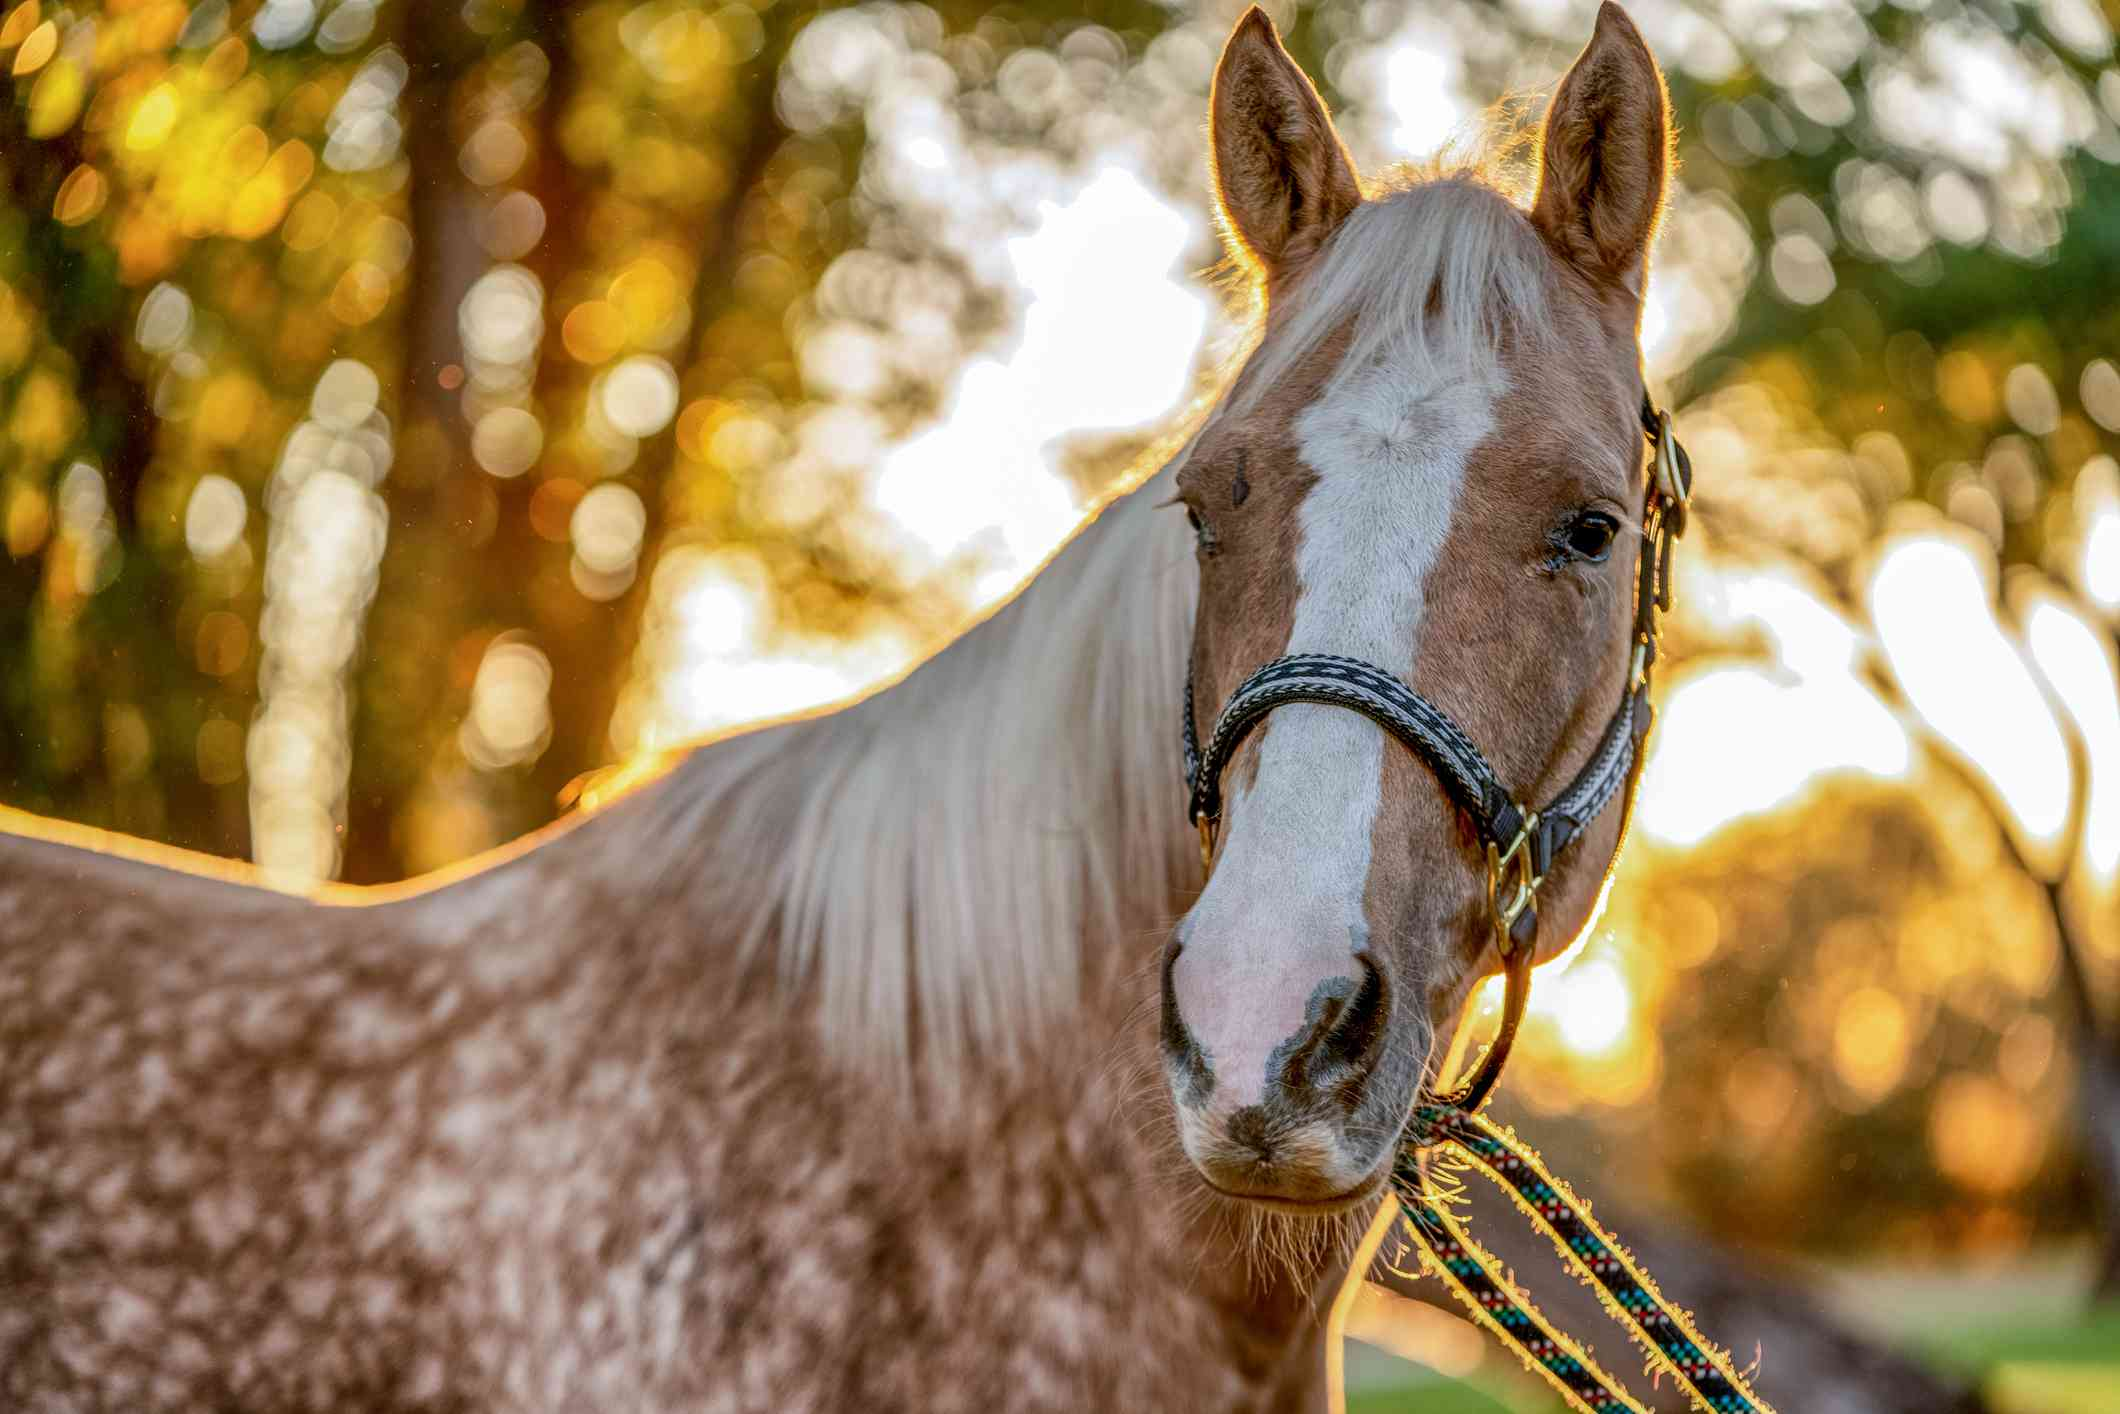 tan and white speckled horse with ears perked up tall while sun sets